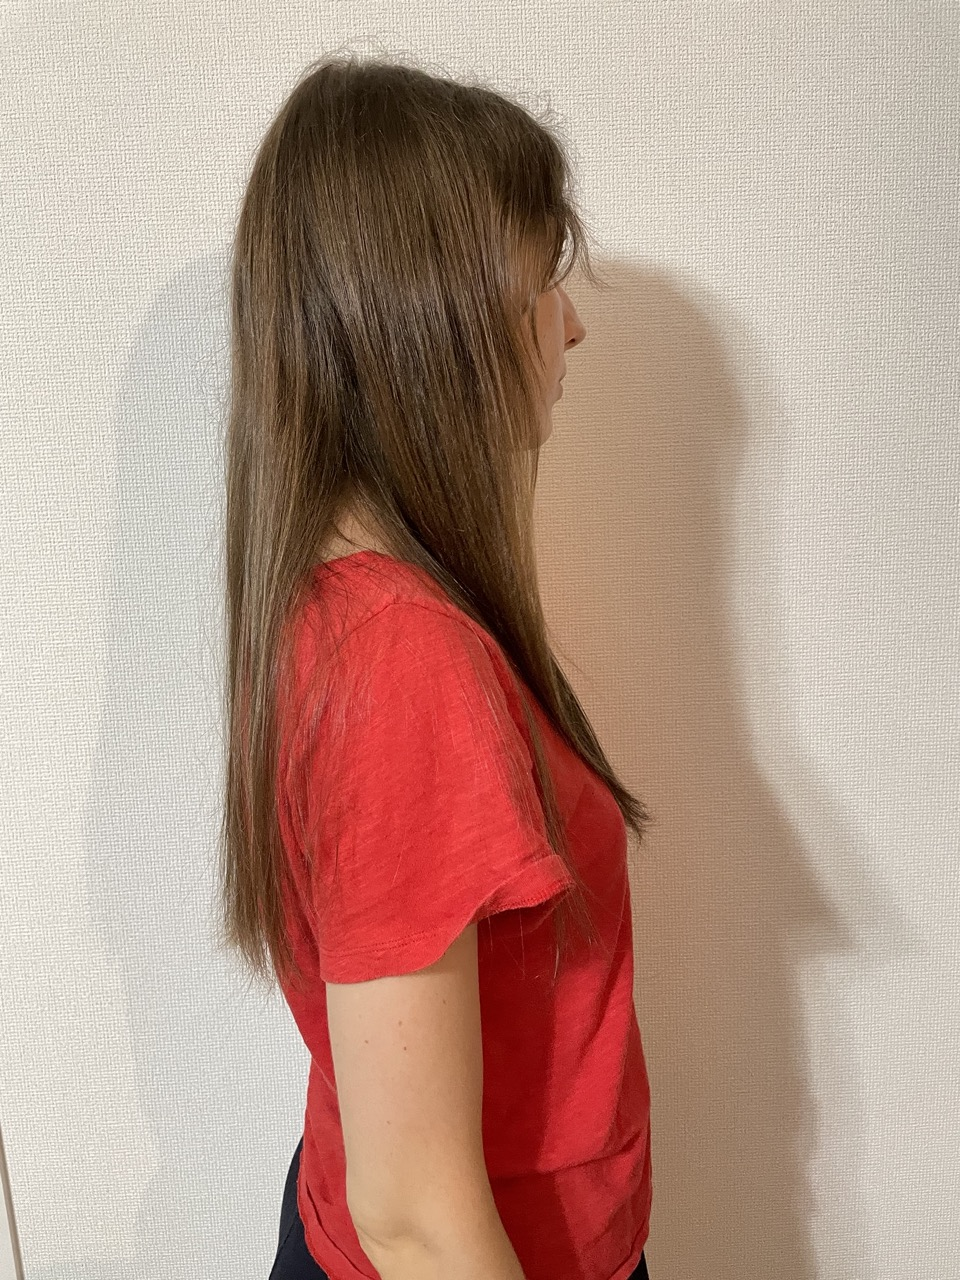 hair_ater_using_the_public_organic_super_bouncy2